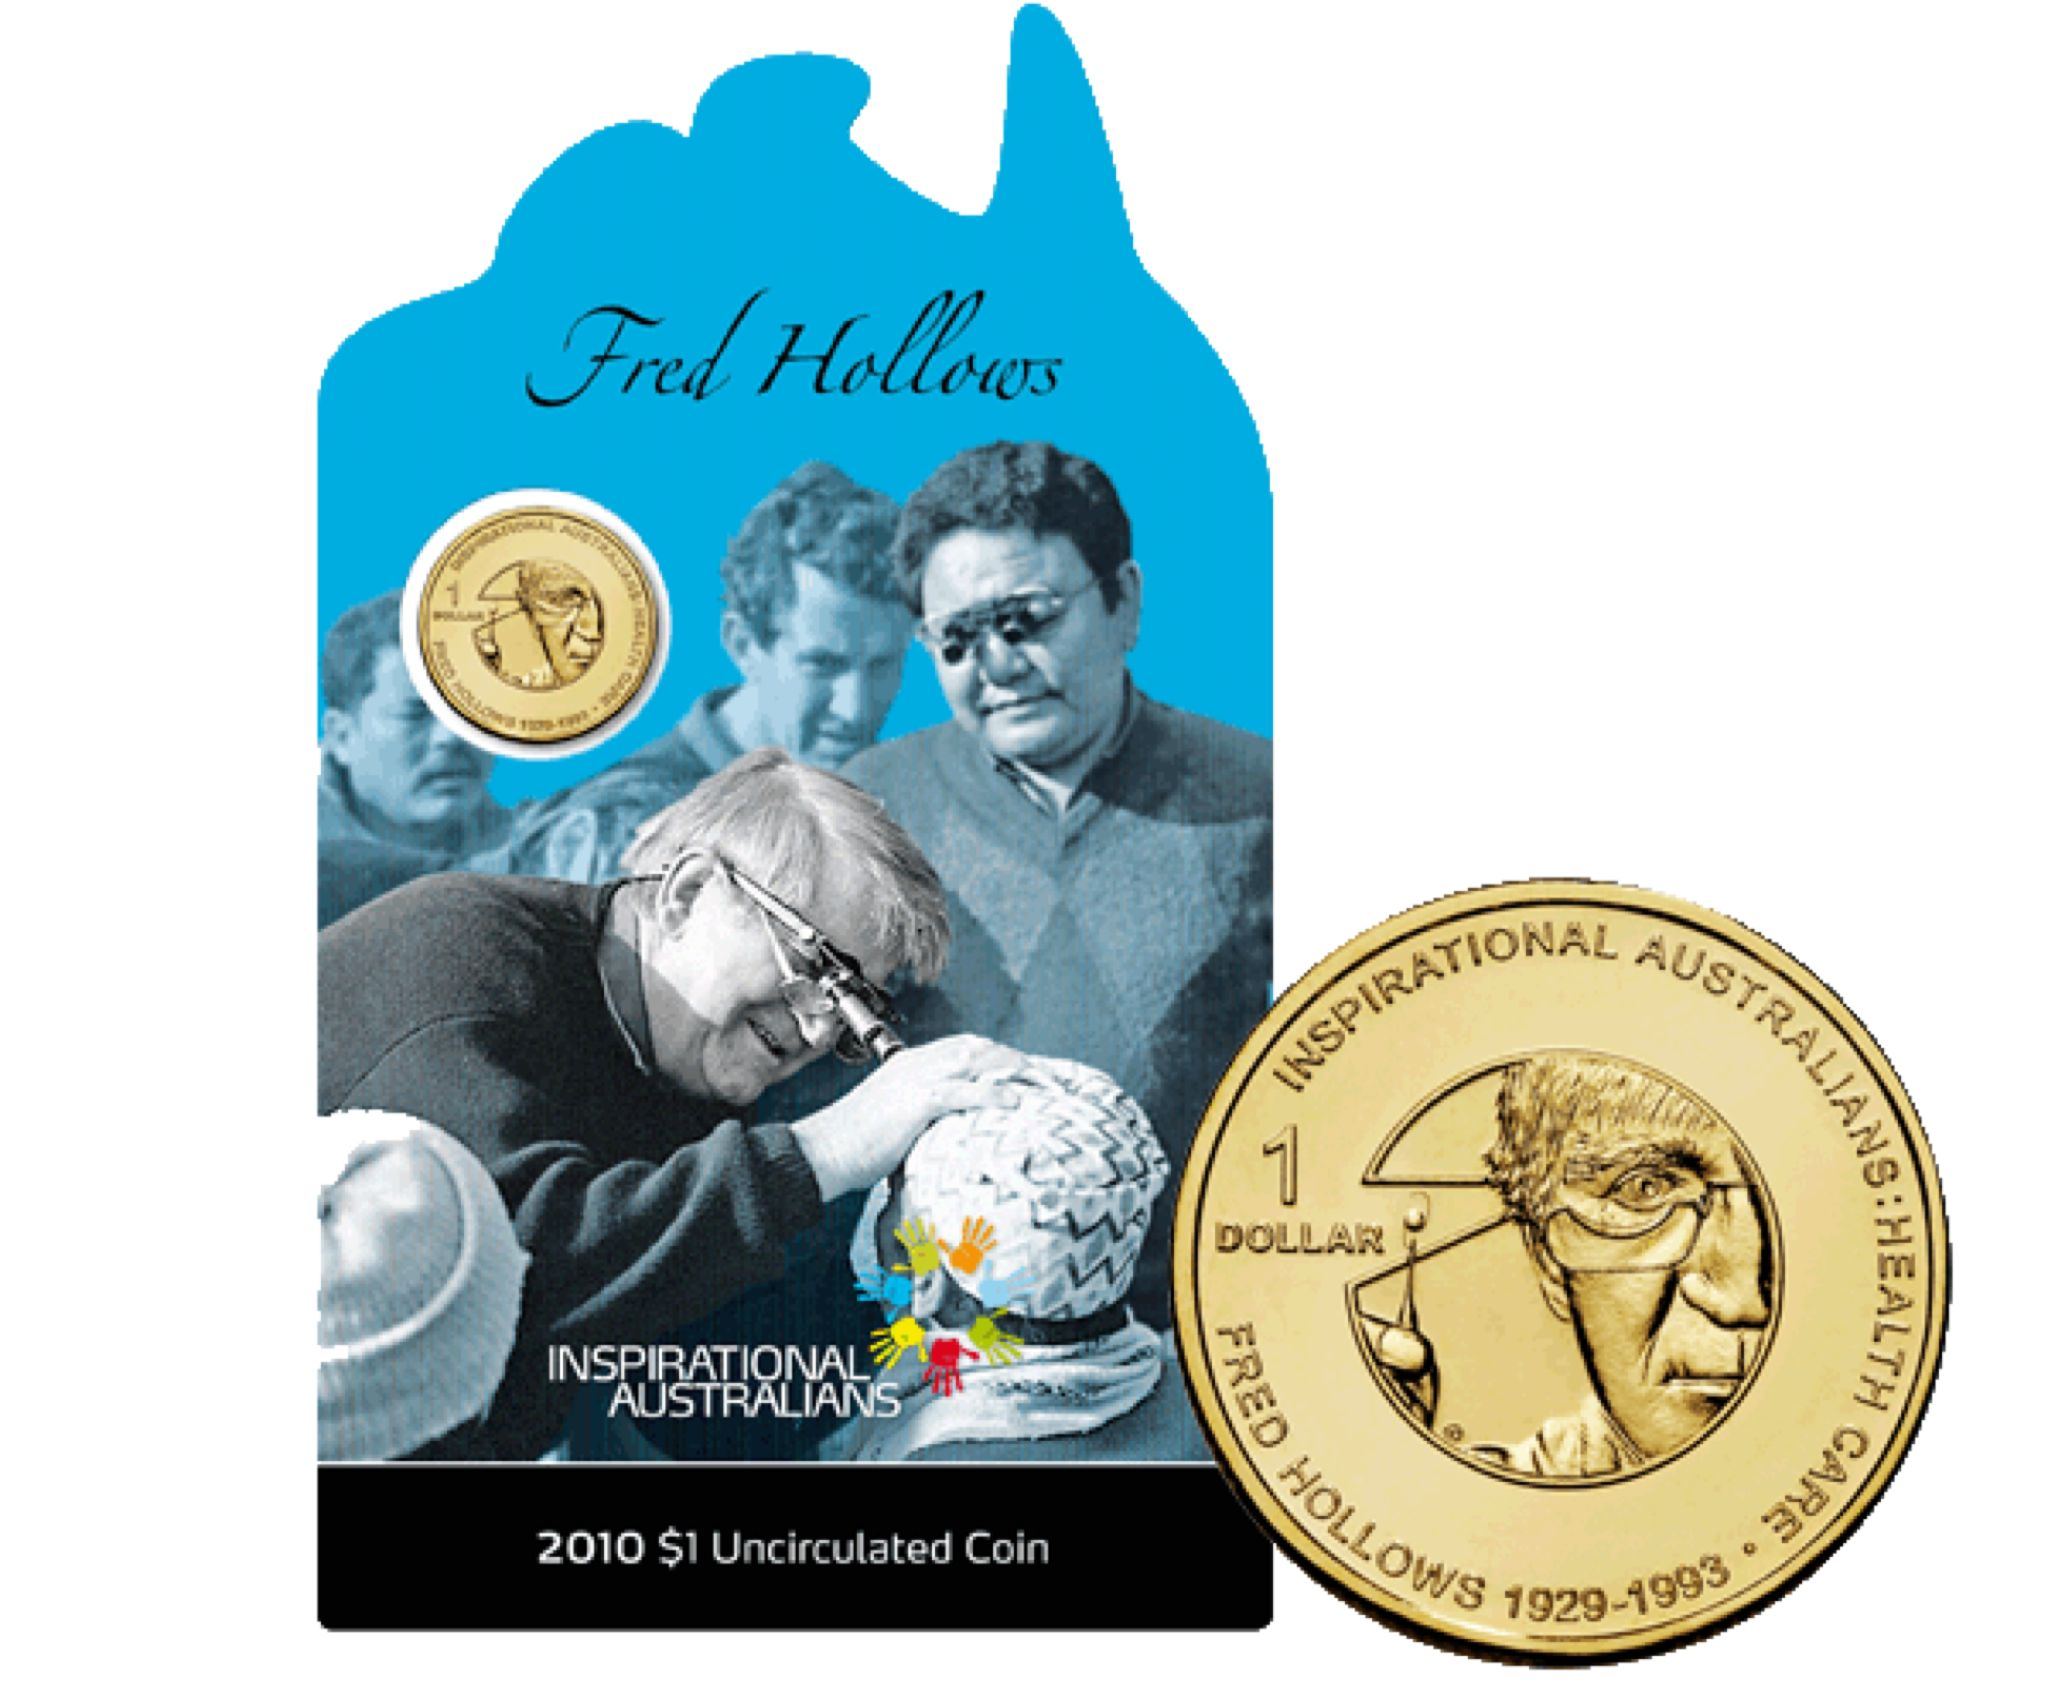 2010 $1 Uncirculated Inspirational Australians - Fred Hollows Coin - $1 (2010) front image (front cover)